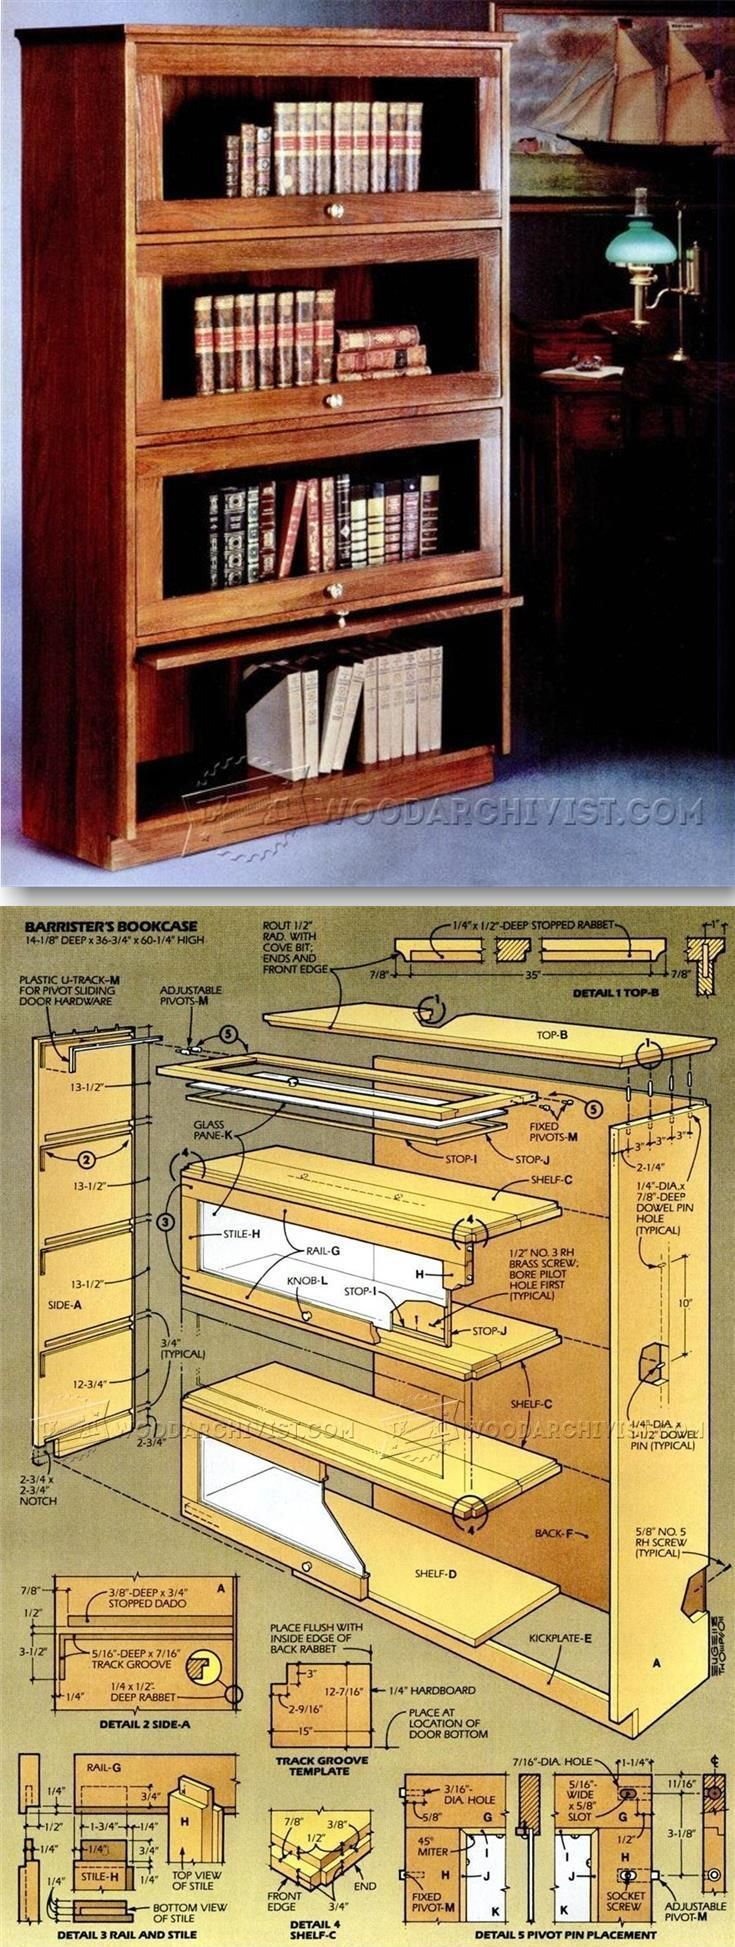 Barristers Bookcase Plans - Furniture Plans and Projects |  http://WoodArchivist.com - Best 25+ Barrister Bookcase Ideas On Pinterest Vintage Bookcase